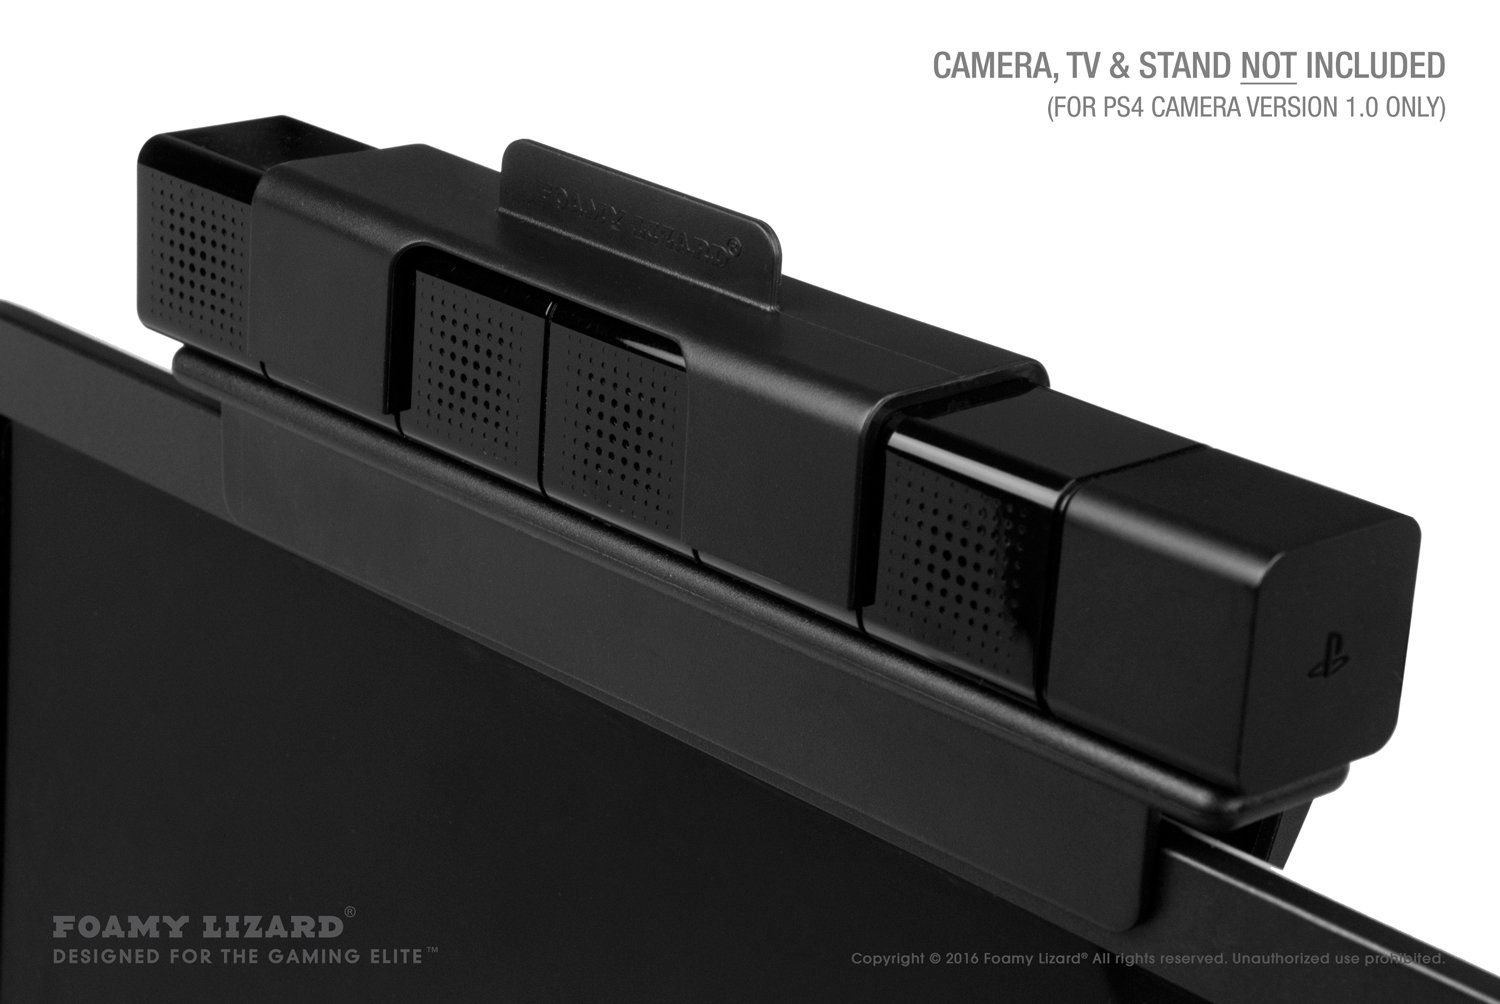 Privacy Shield For Original Playstation 4 Camera By Foamy Lizard Ps4 Camera Protective Concealing Camera Lens Cover For Olde Ps4 Console Ps4 Camera Playstation